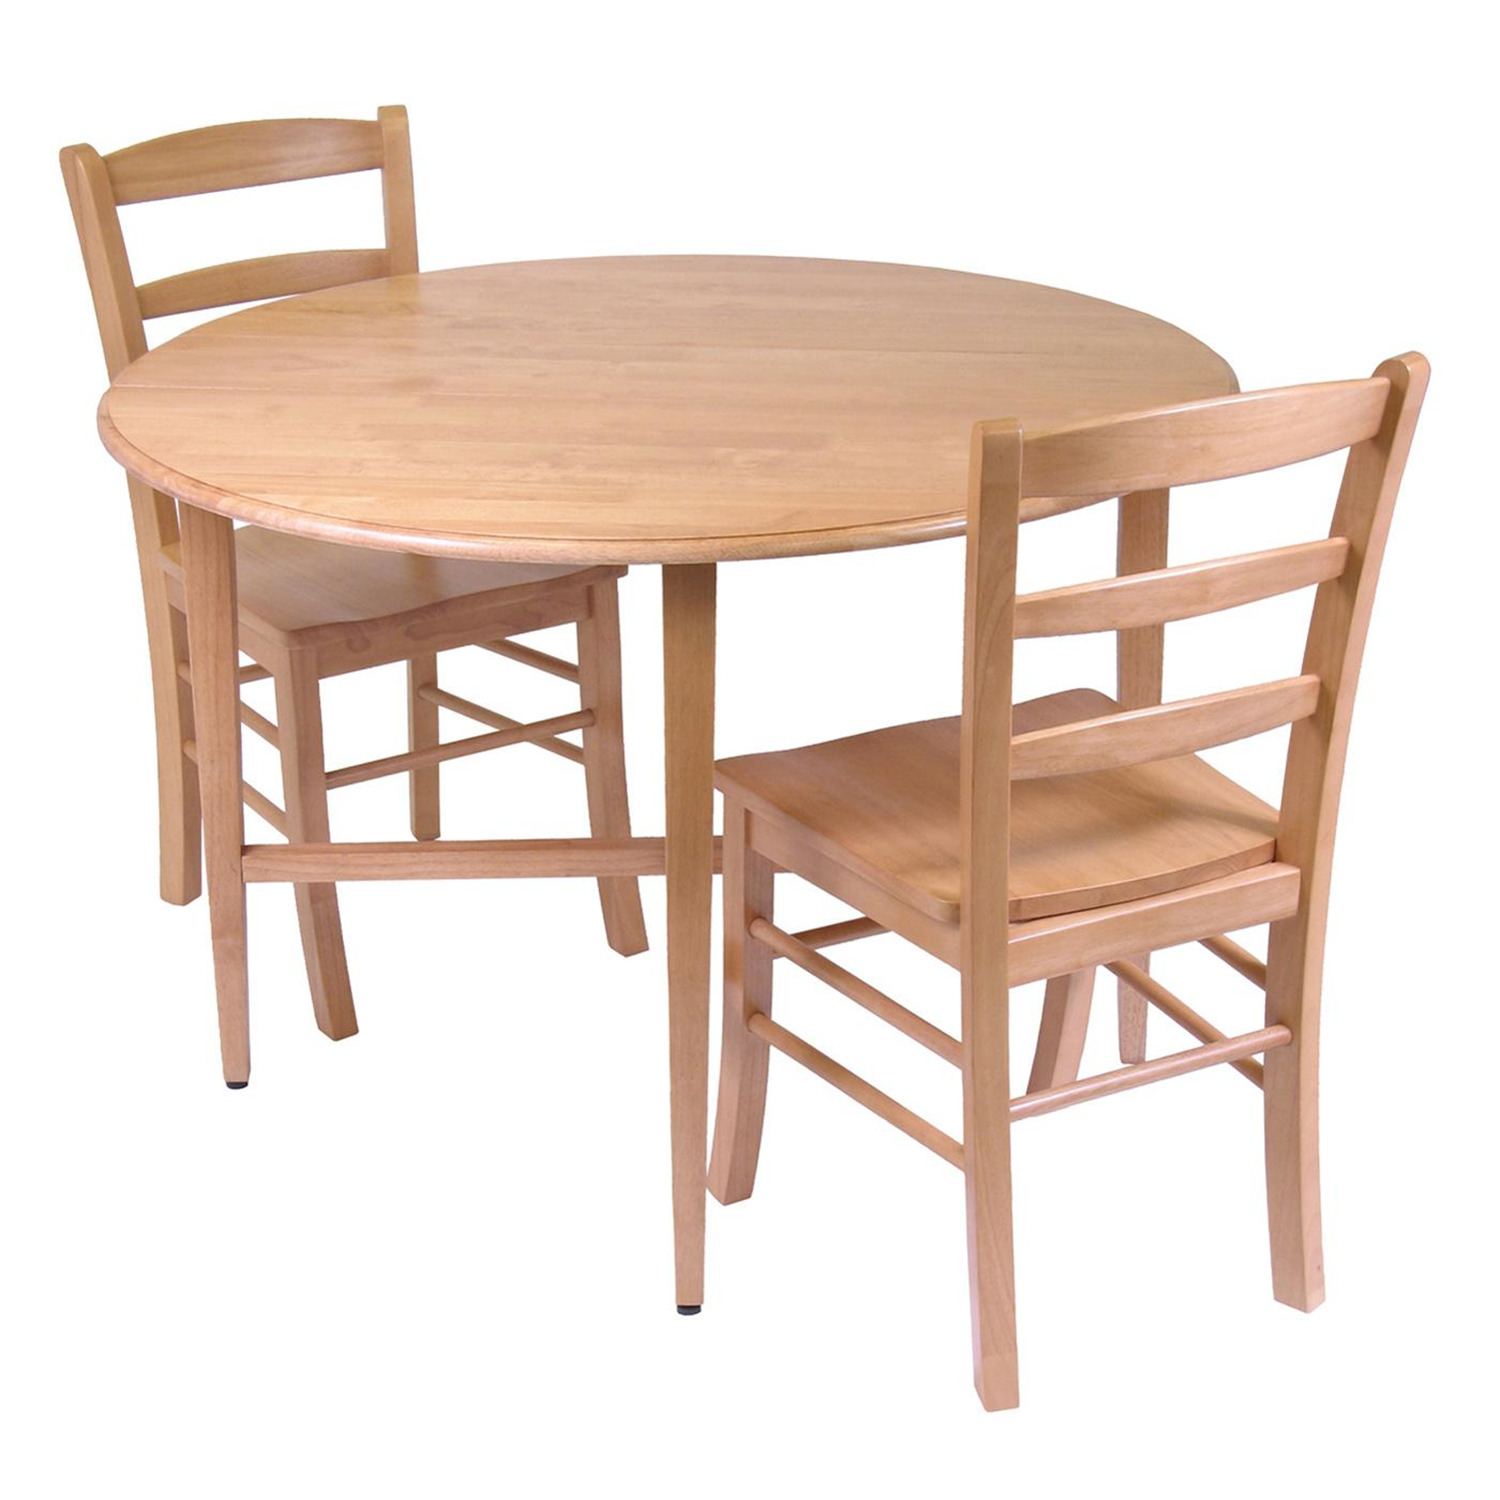 2 Chair Dining Table Hannah 3pc Dining Set Drop Leaf Table With 2 Ladder Back